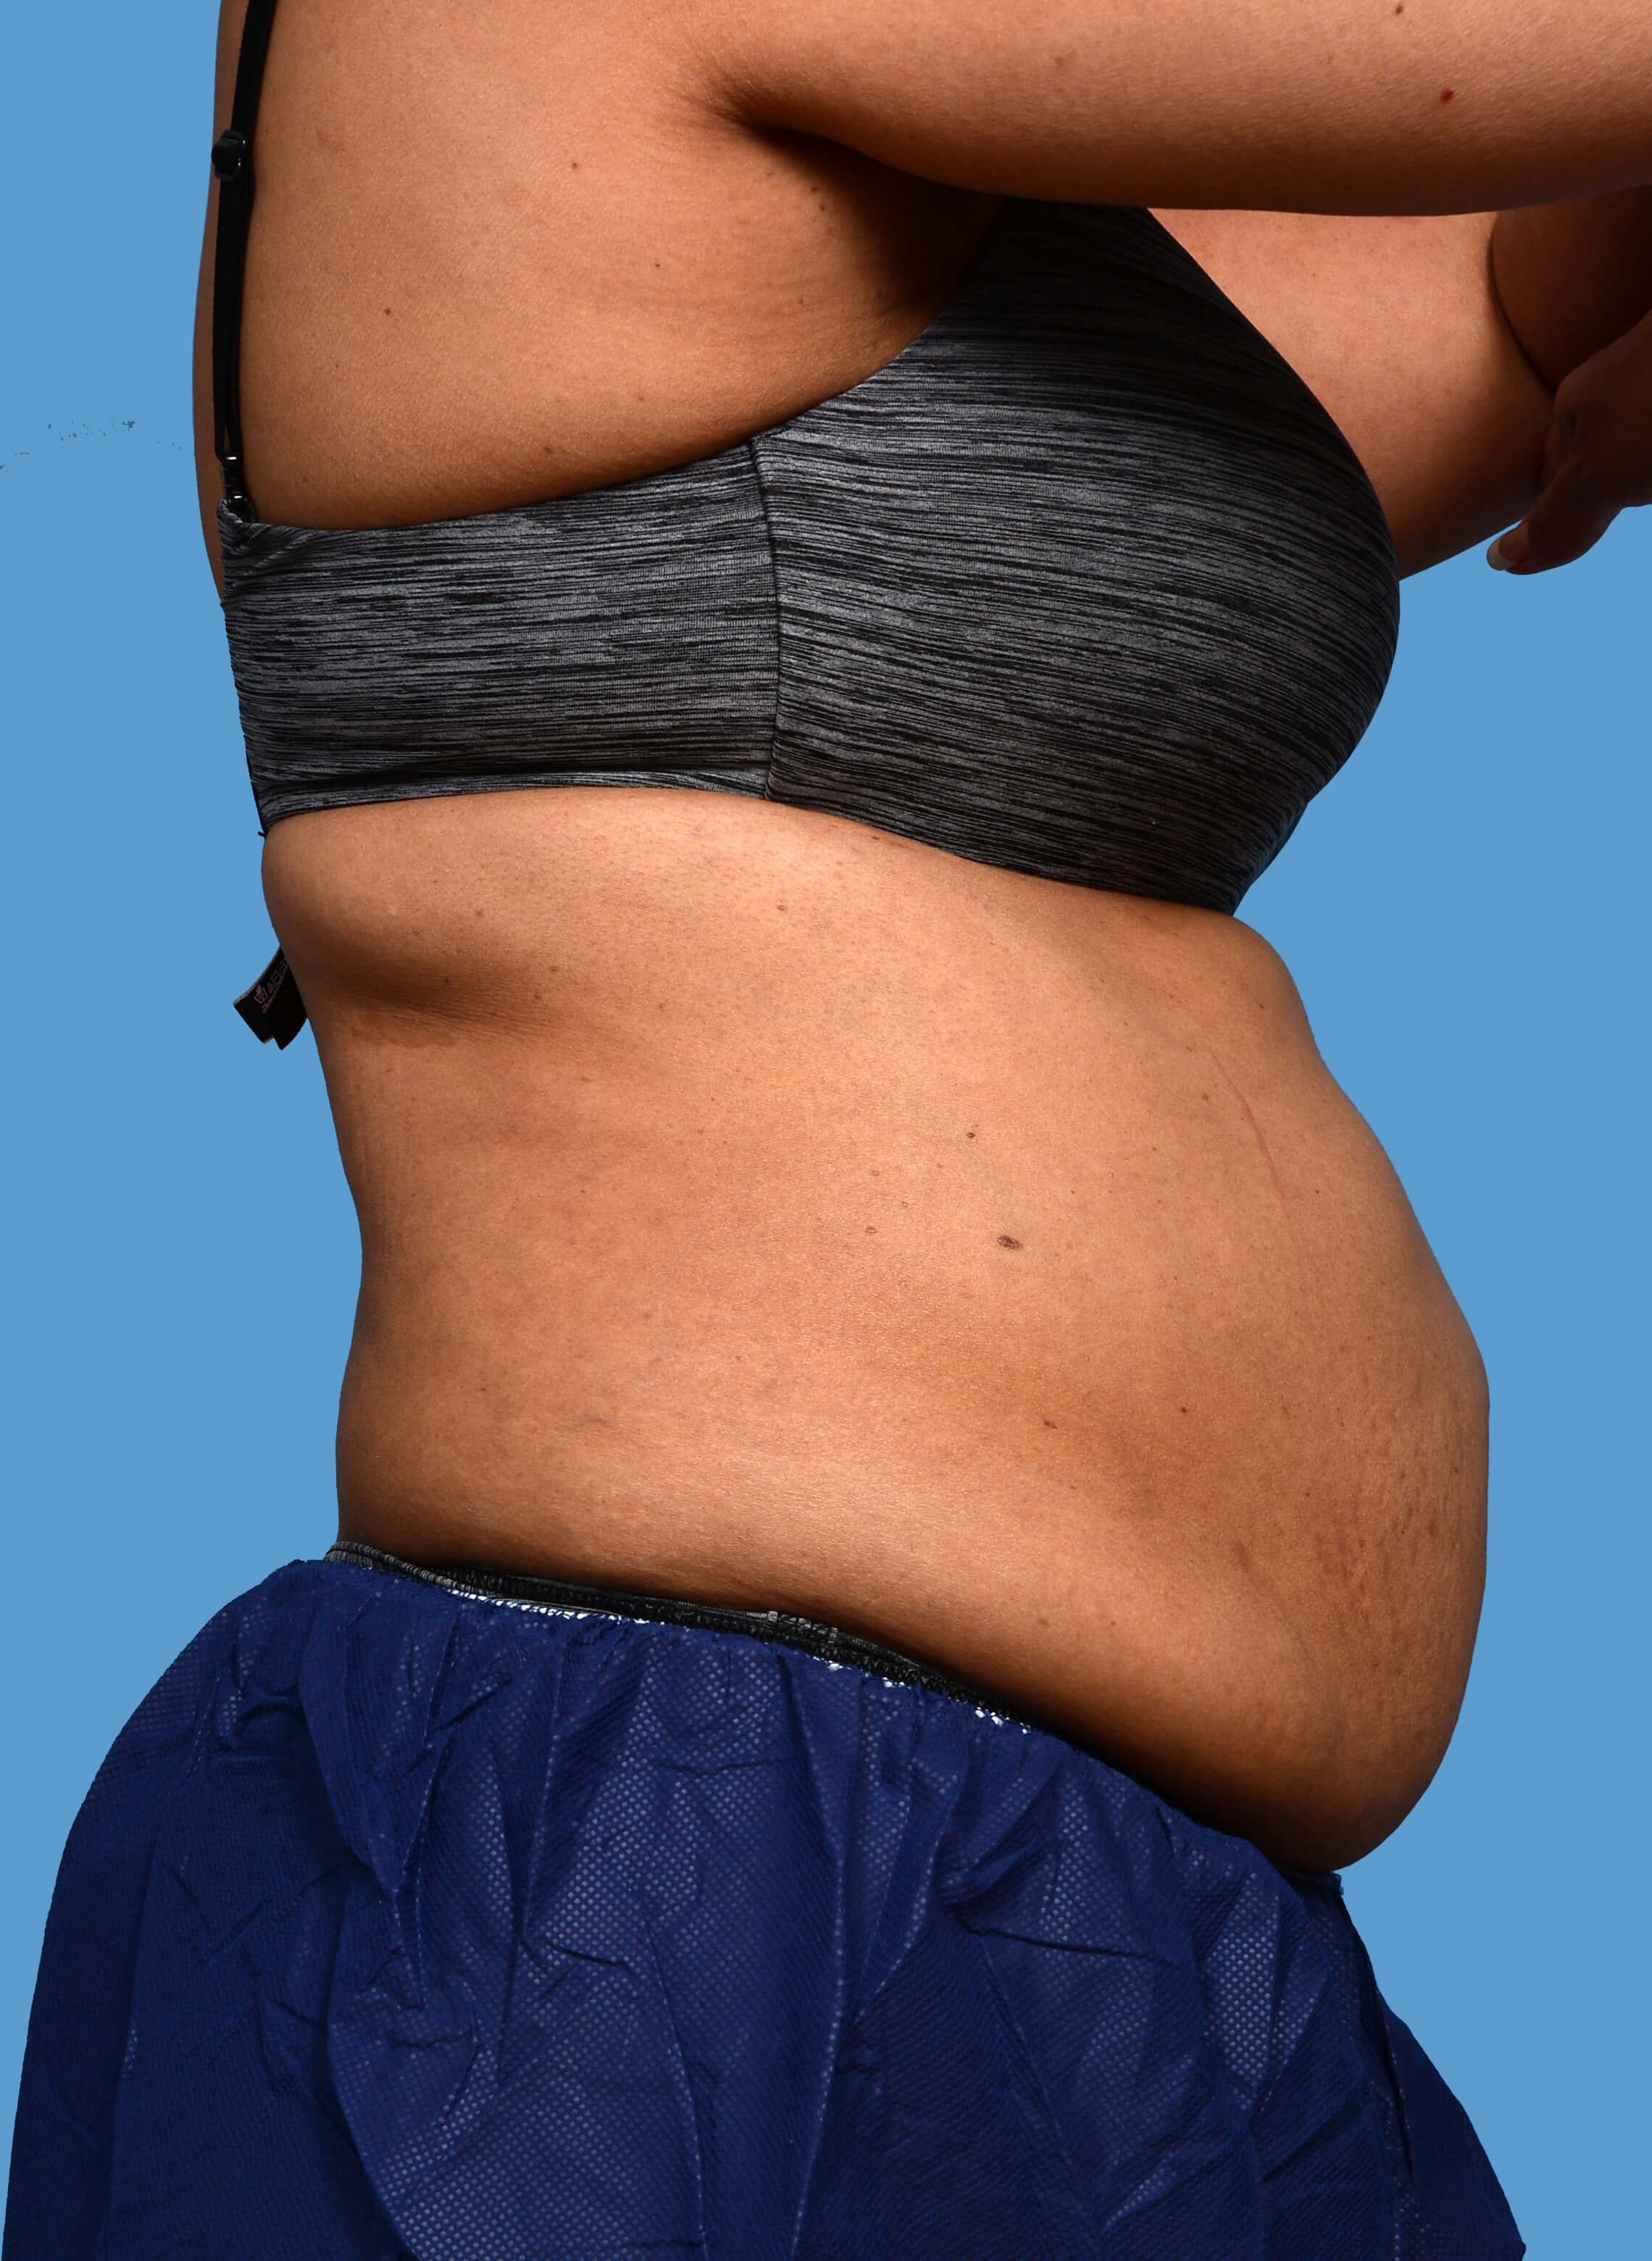 CoolSculpting - Right View Before CoolSculpting Treatment